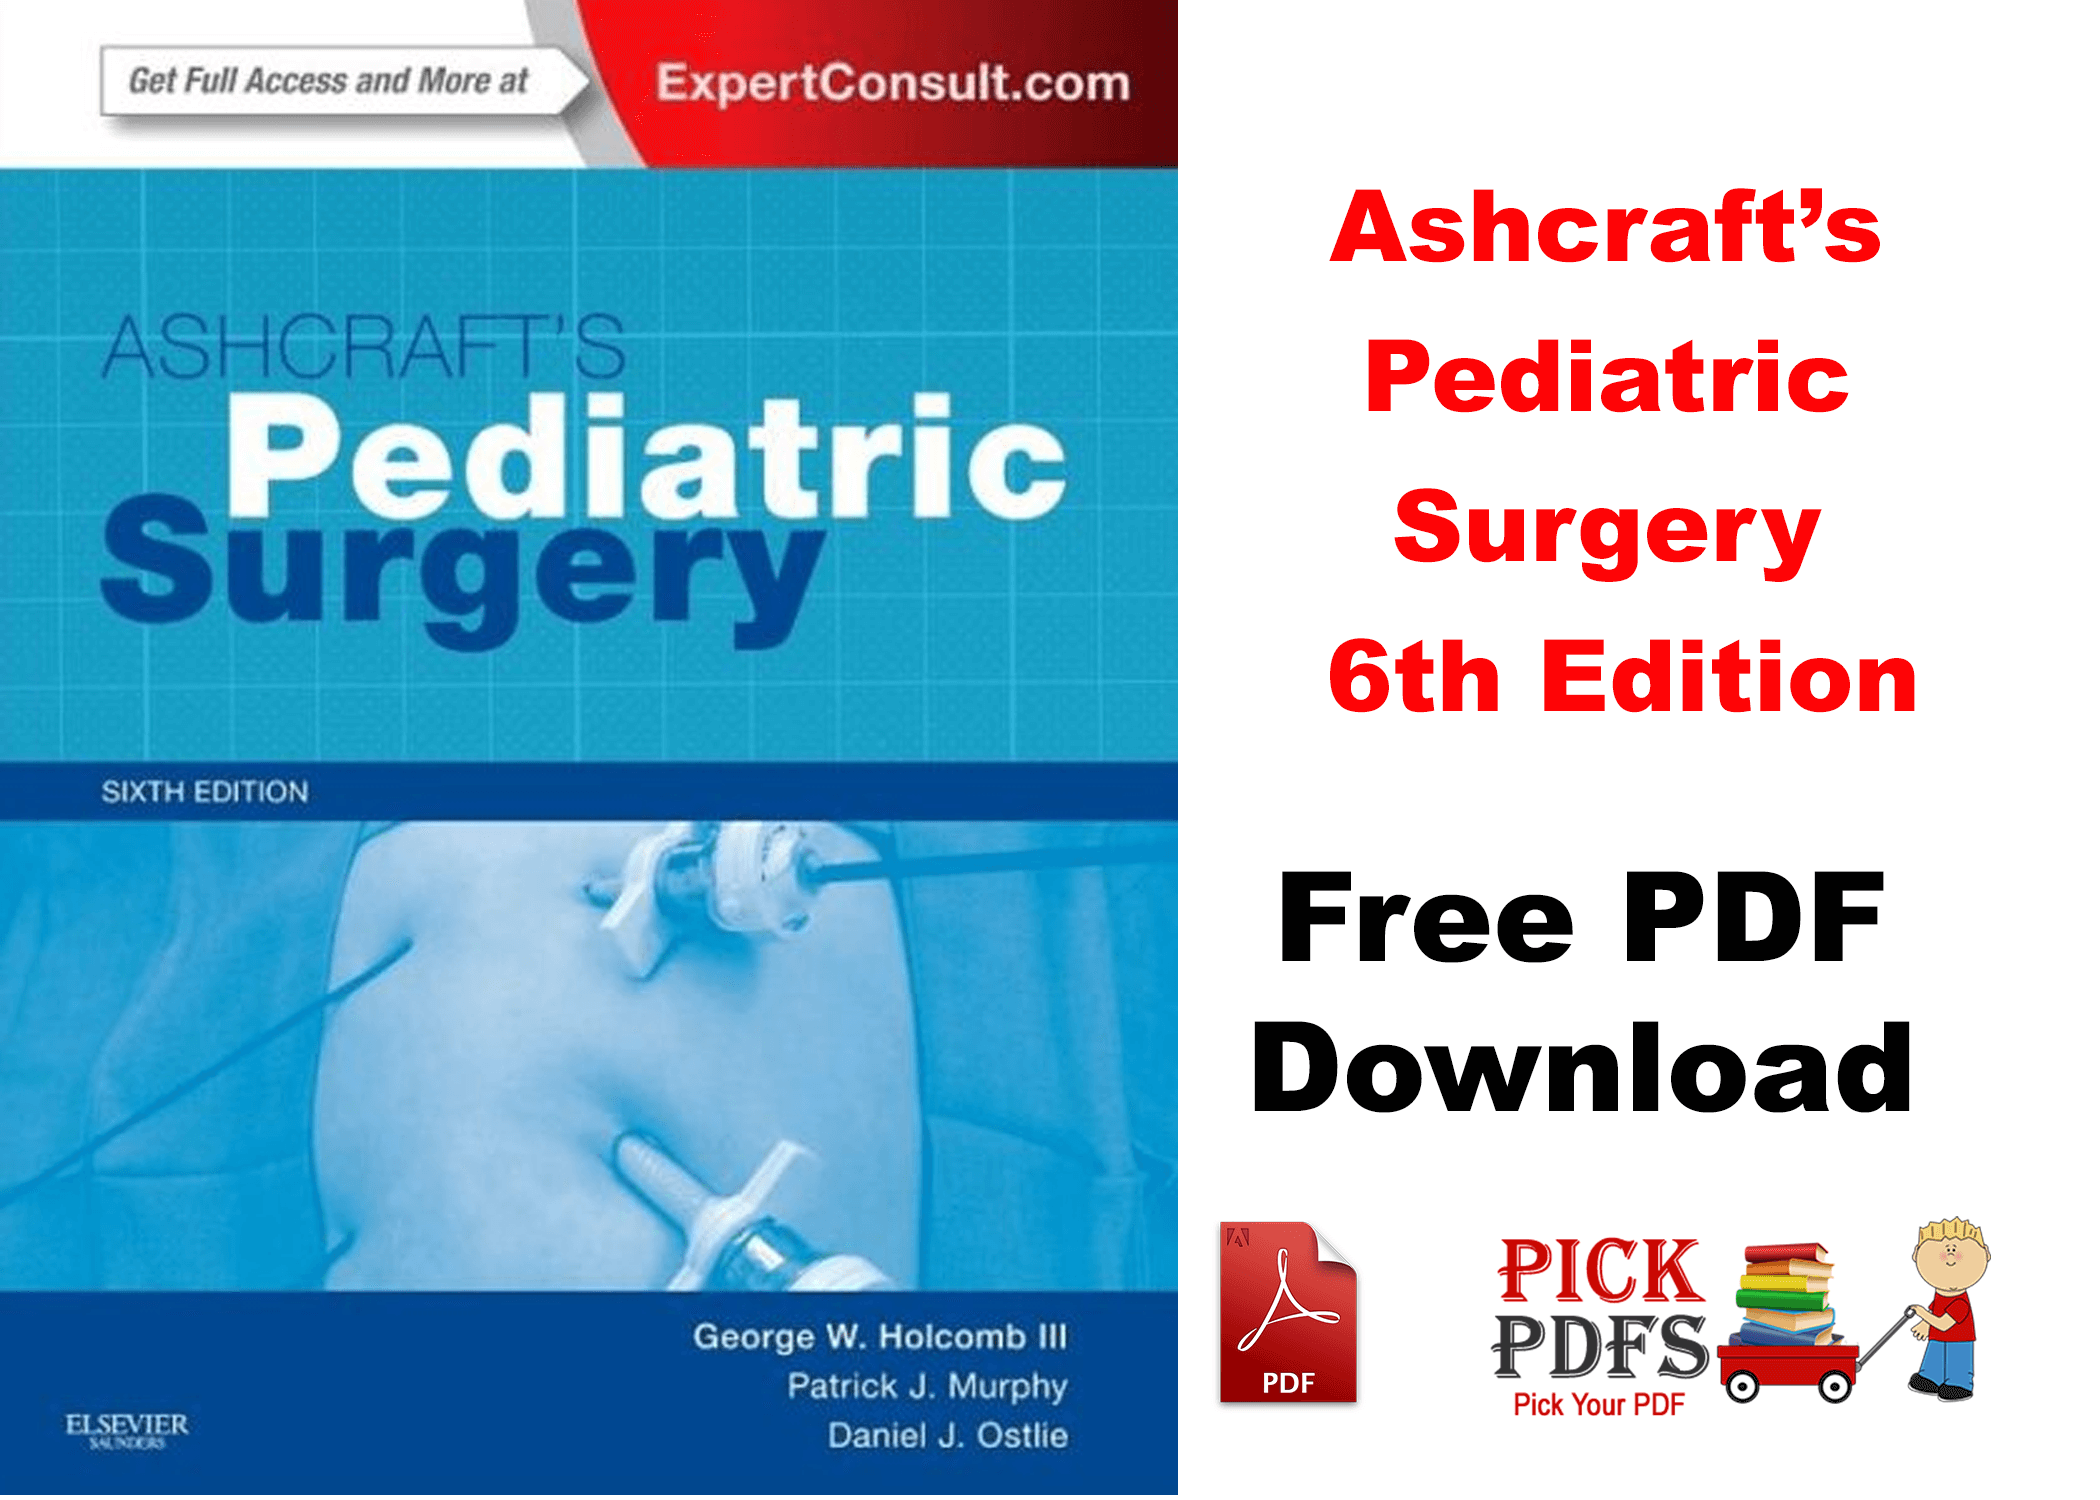 https://pickpdfs.com/ashcrafts-pediatric-surgery-6th-edition-pdf-free-download-direct-link/